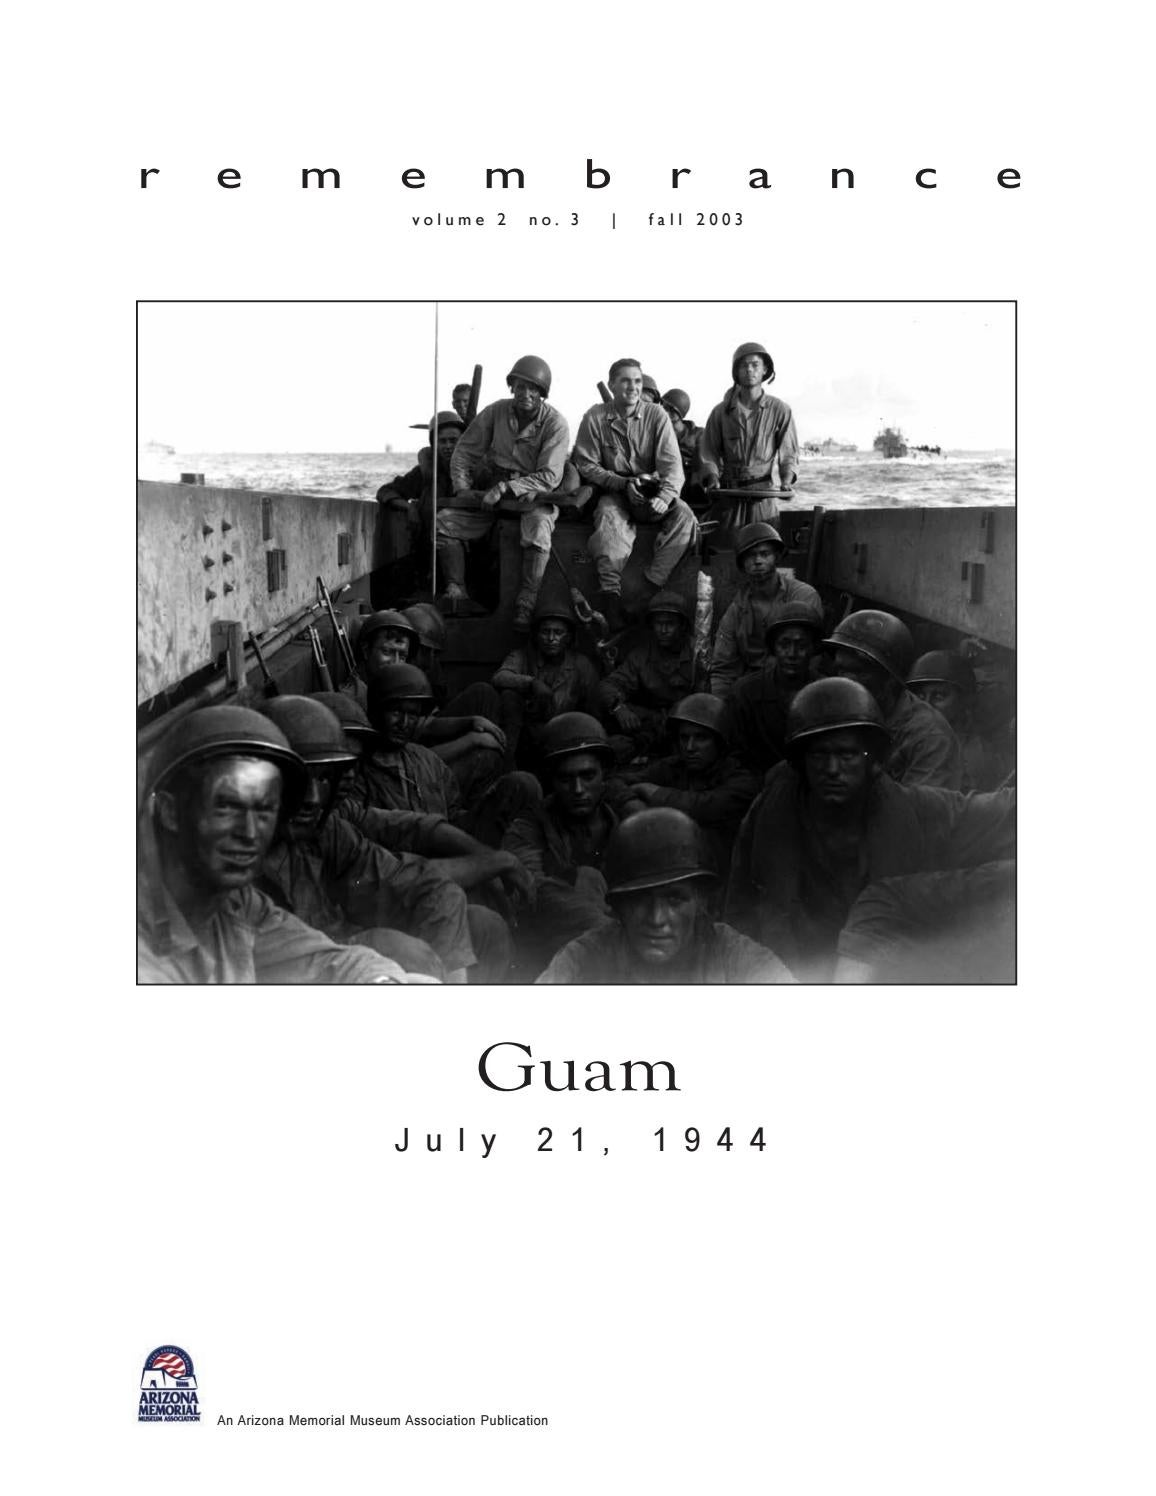 gs newsletter summer by passport publications media 2003 fall remembrance